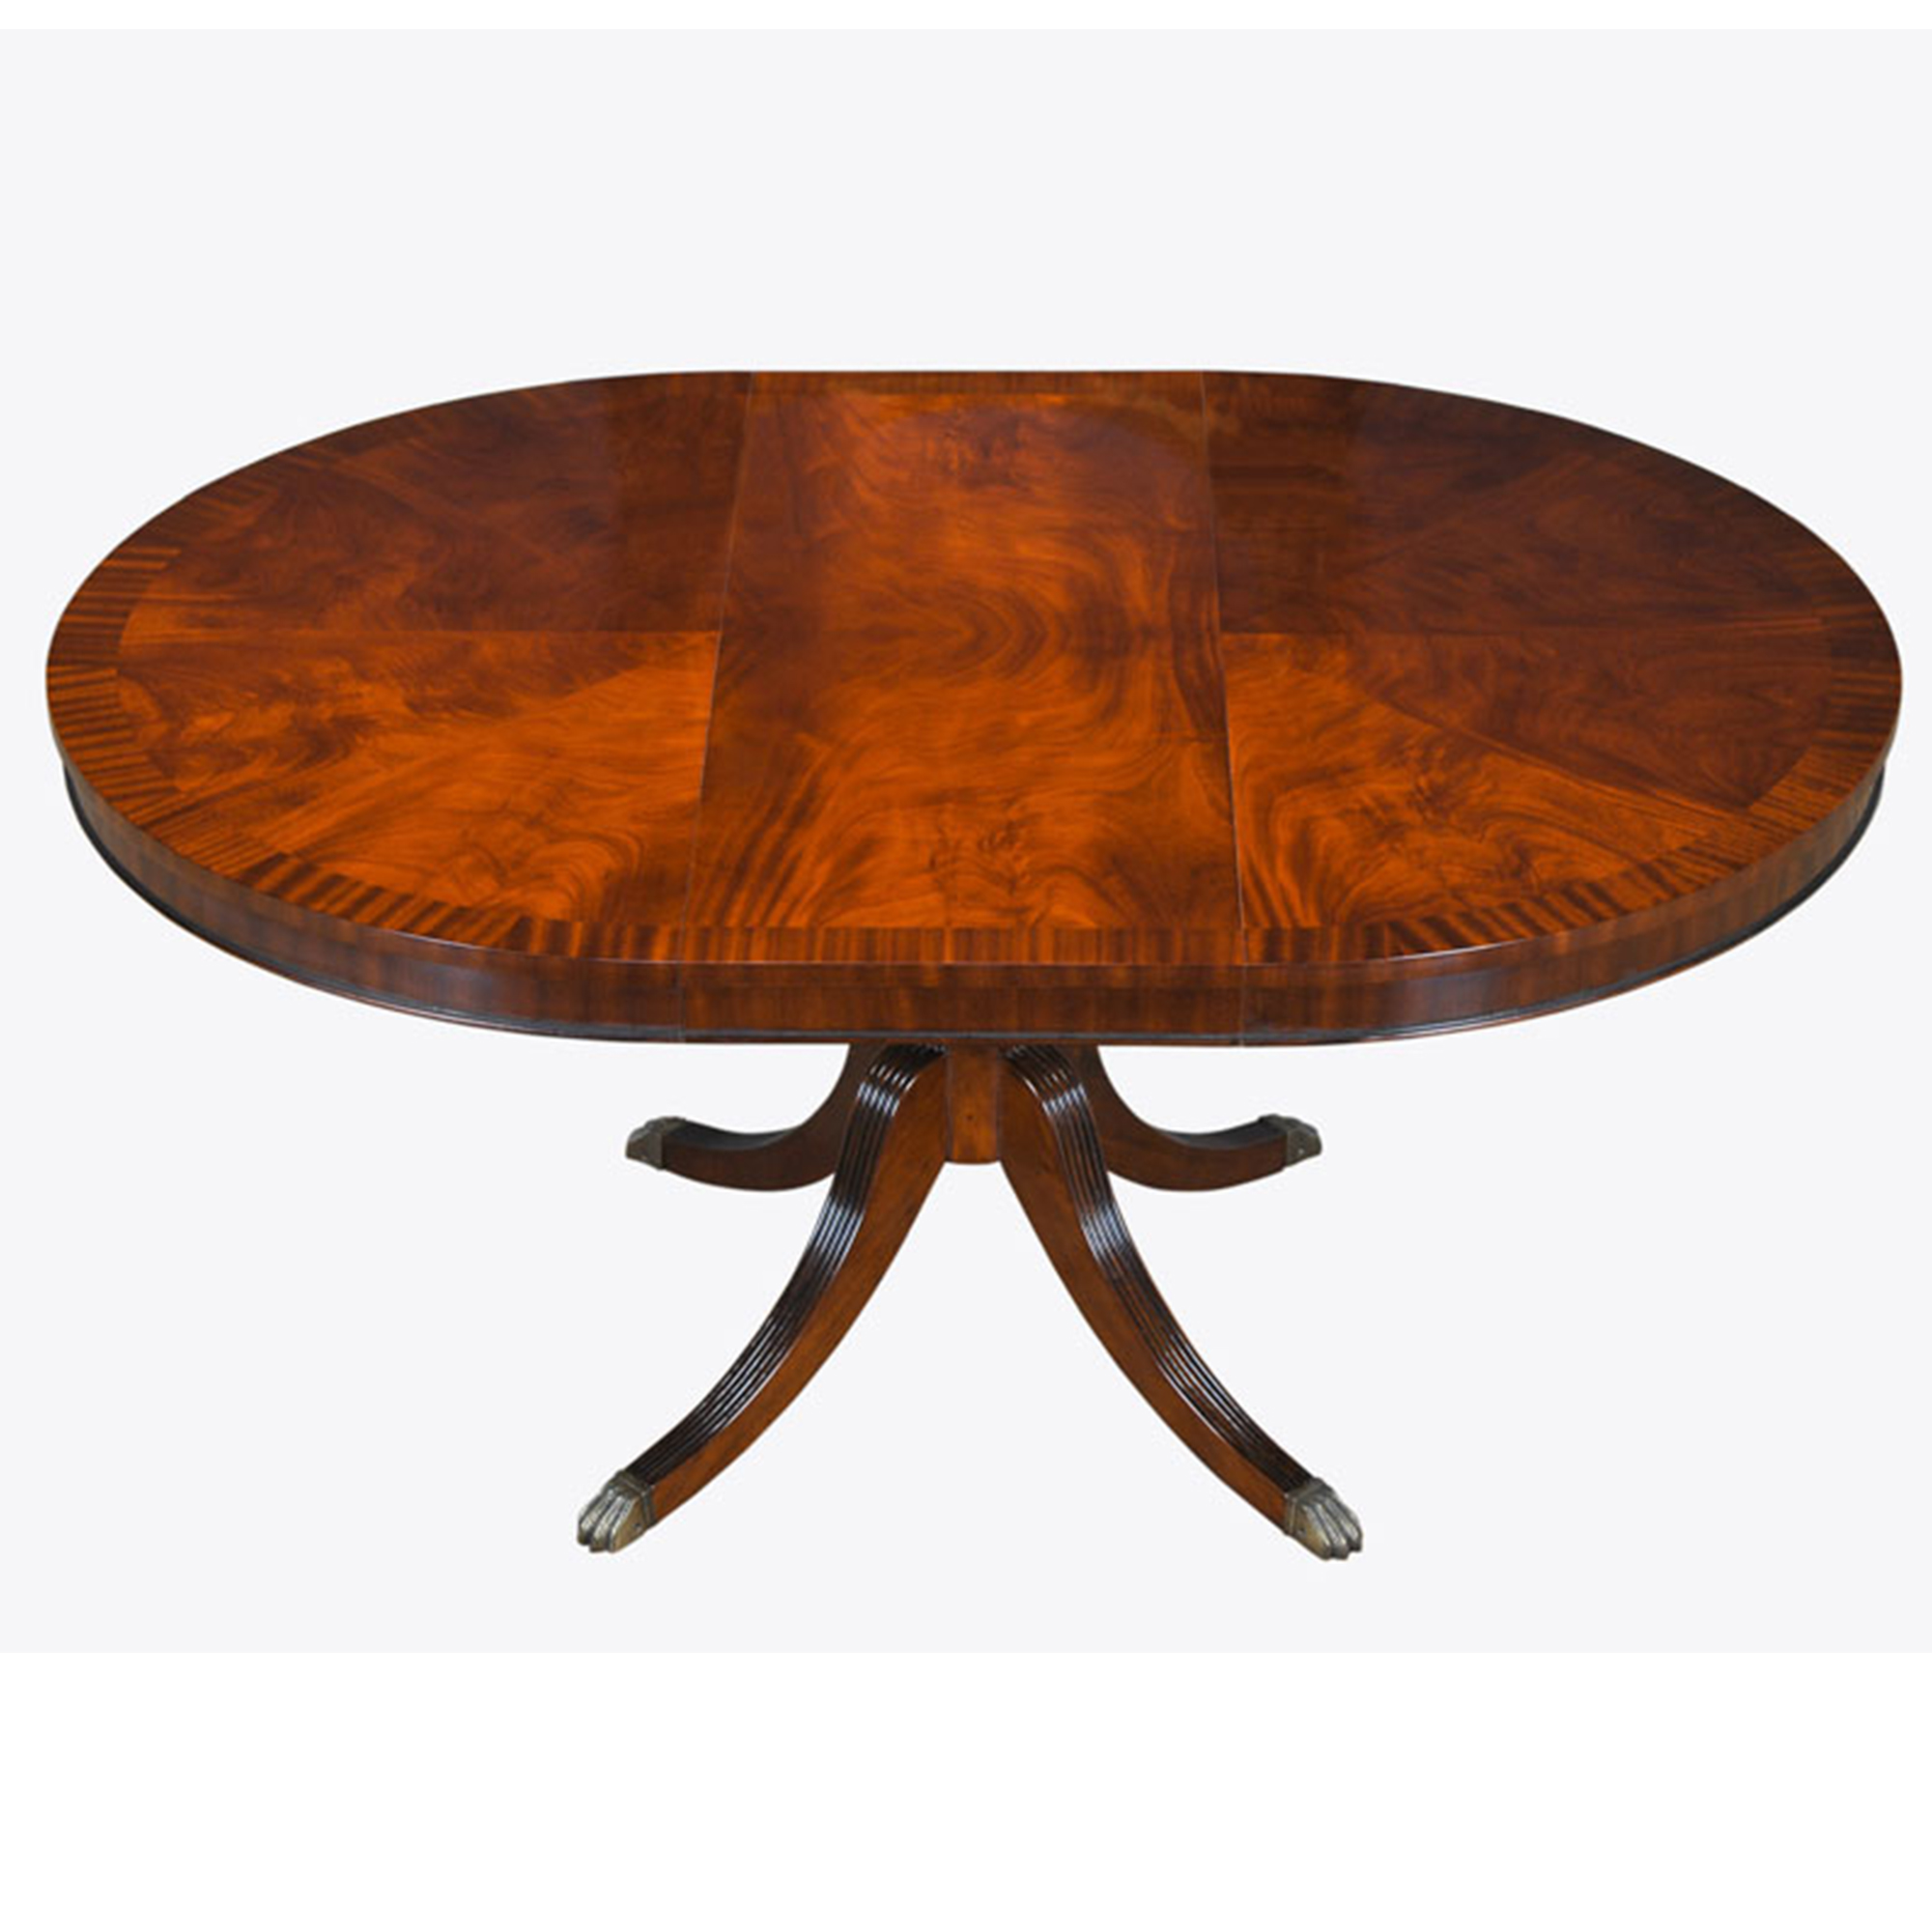 48 round dining table niagara furniture round mahogany for Dining room tables 48 round